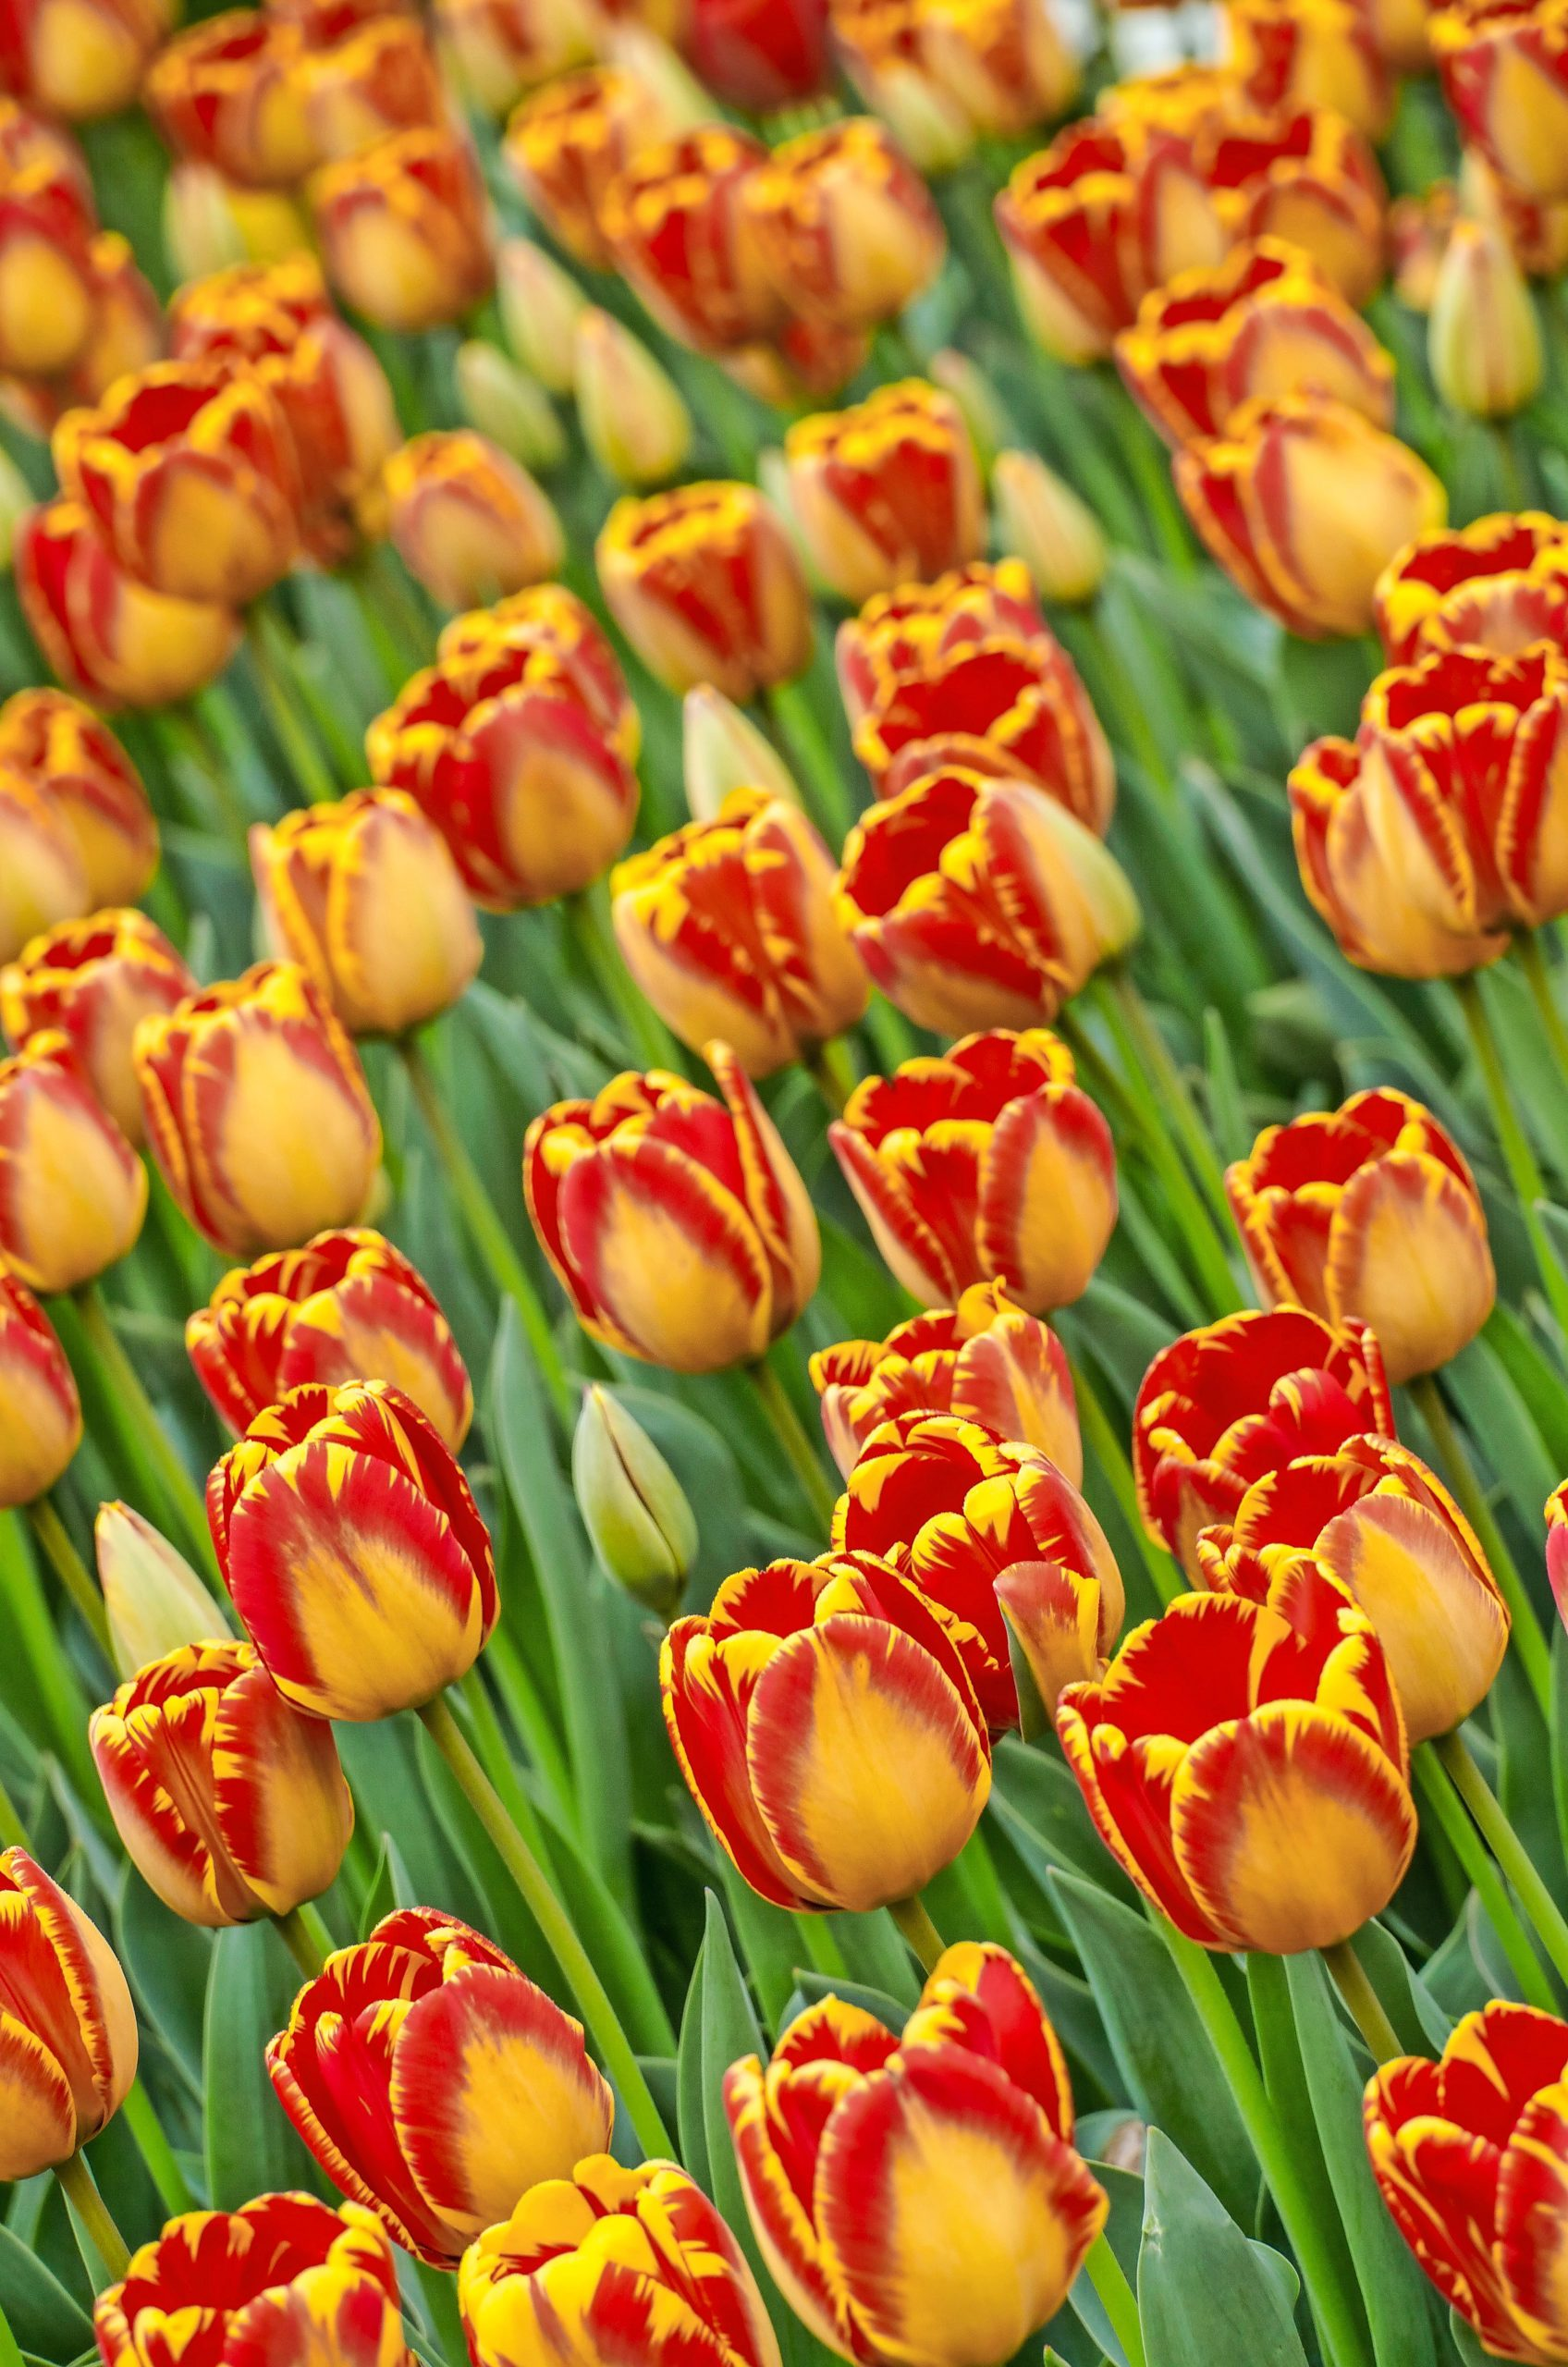 Banja Luka tulips dazzle with red and orange displays.